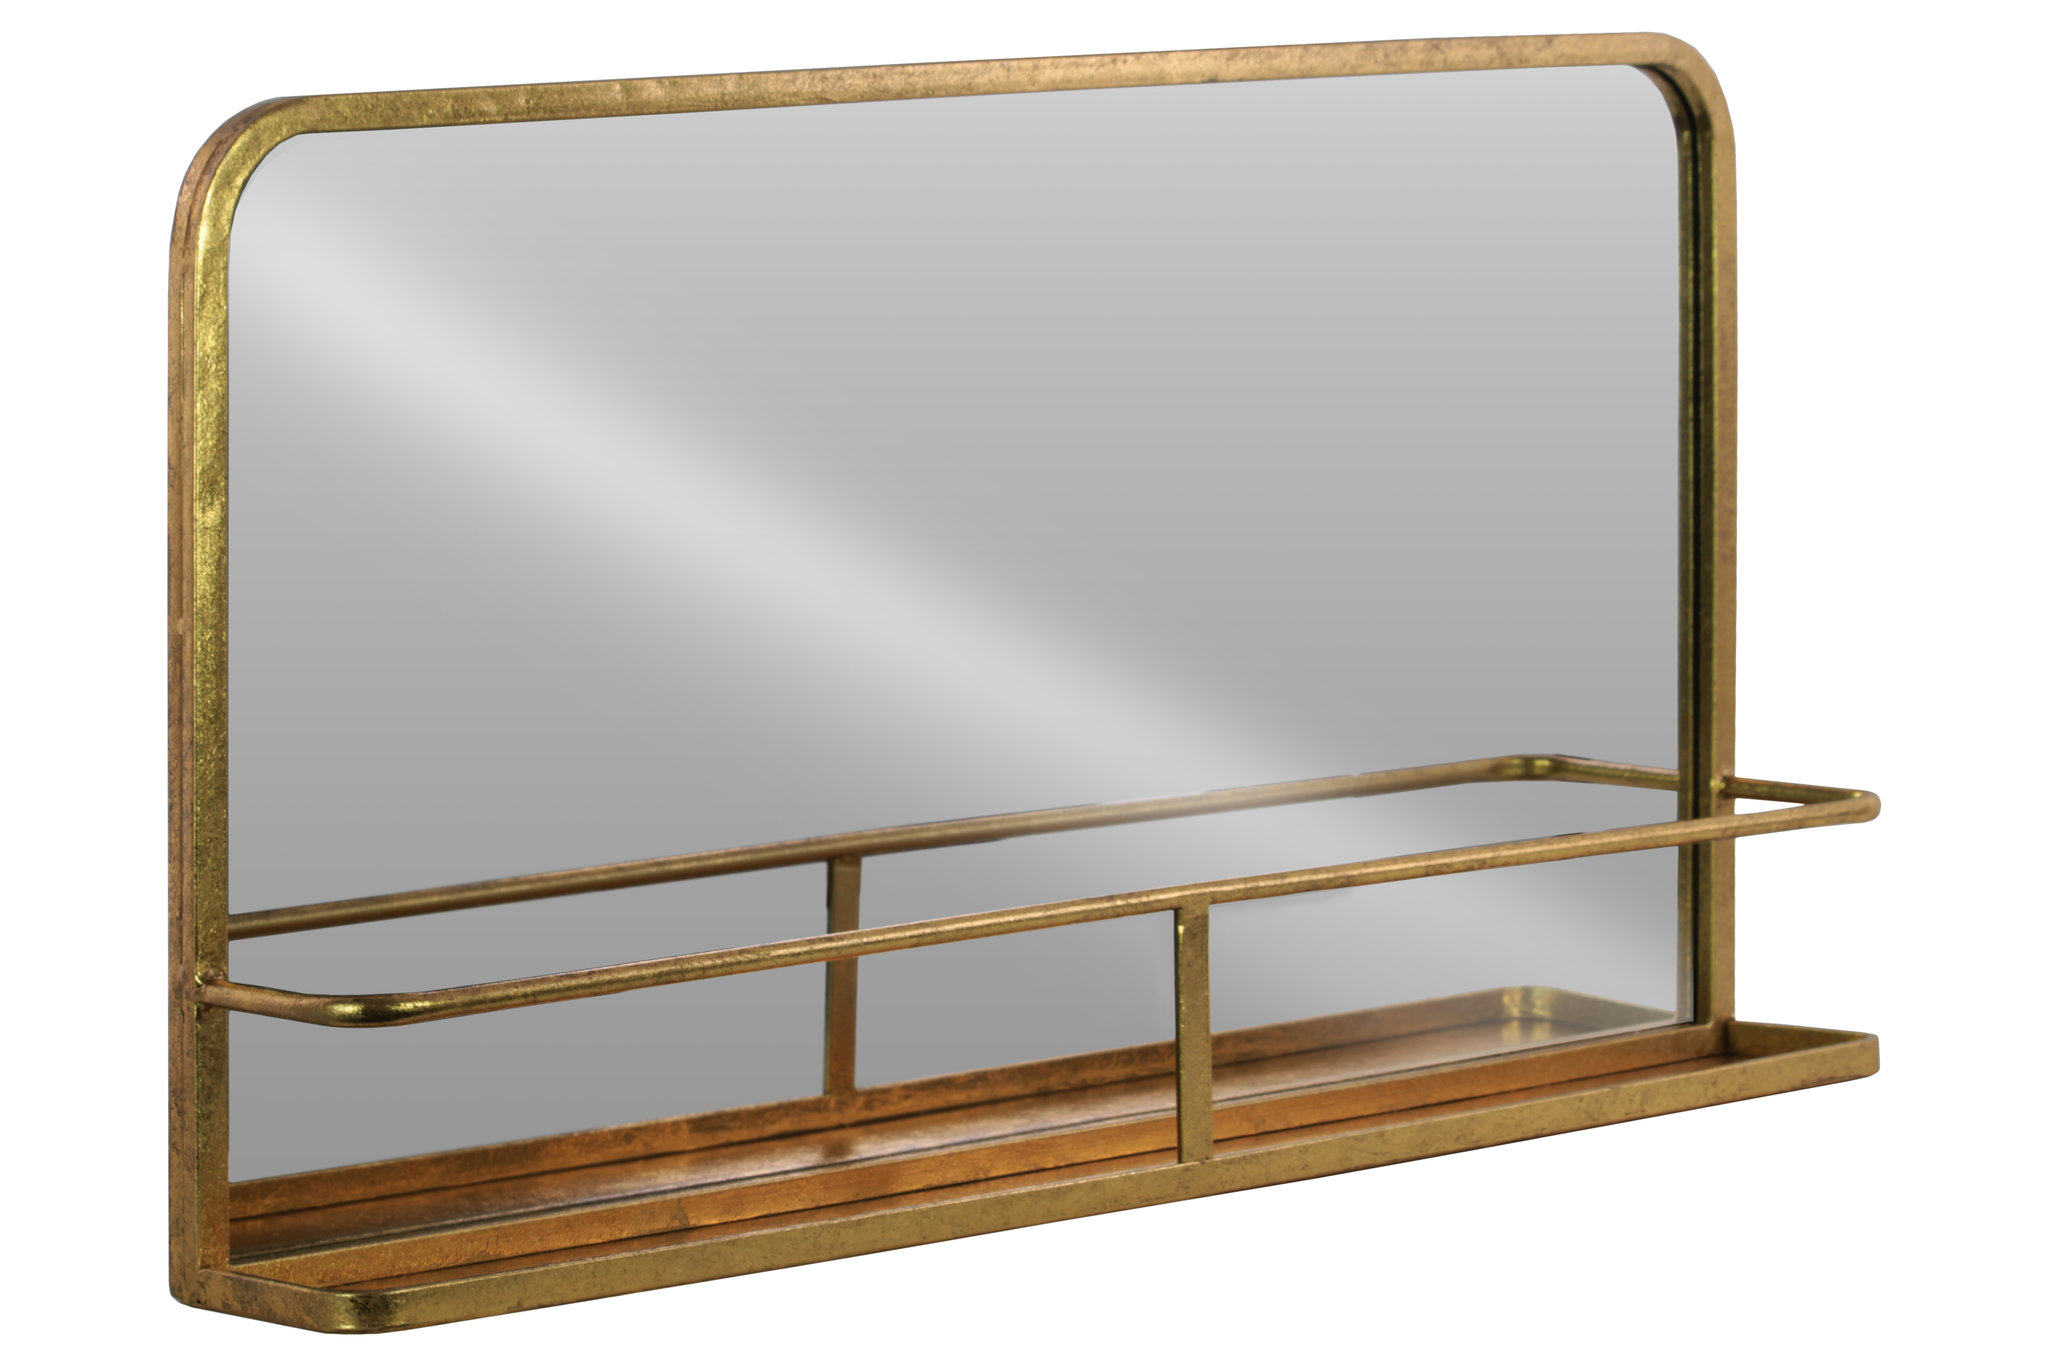 Gracie Oaks Dalston Rectangle Metal Wall Mirror With Shelf intended for Koeller Industrial Metal Wall Mirrors (Image 9 of 30)